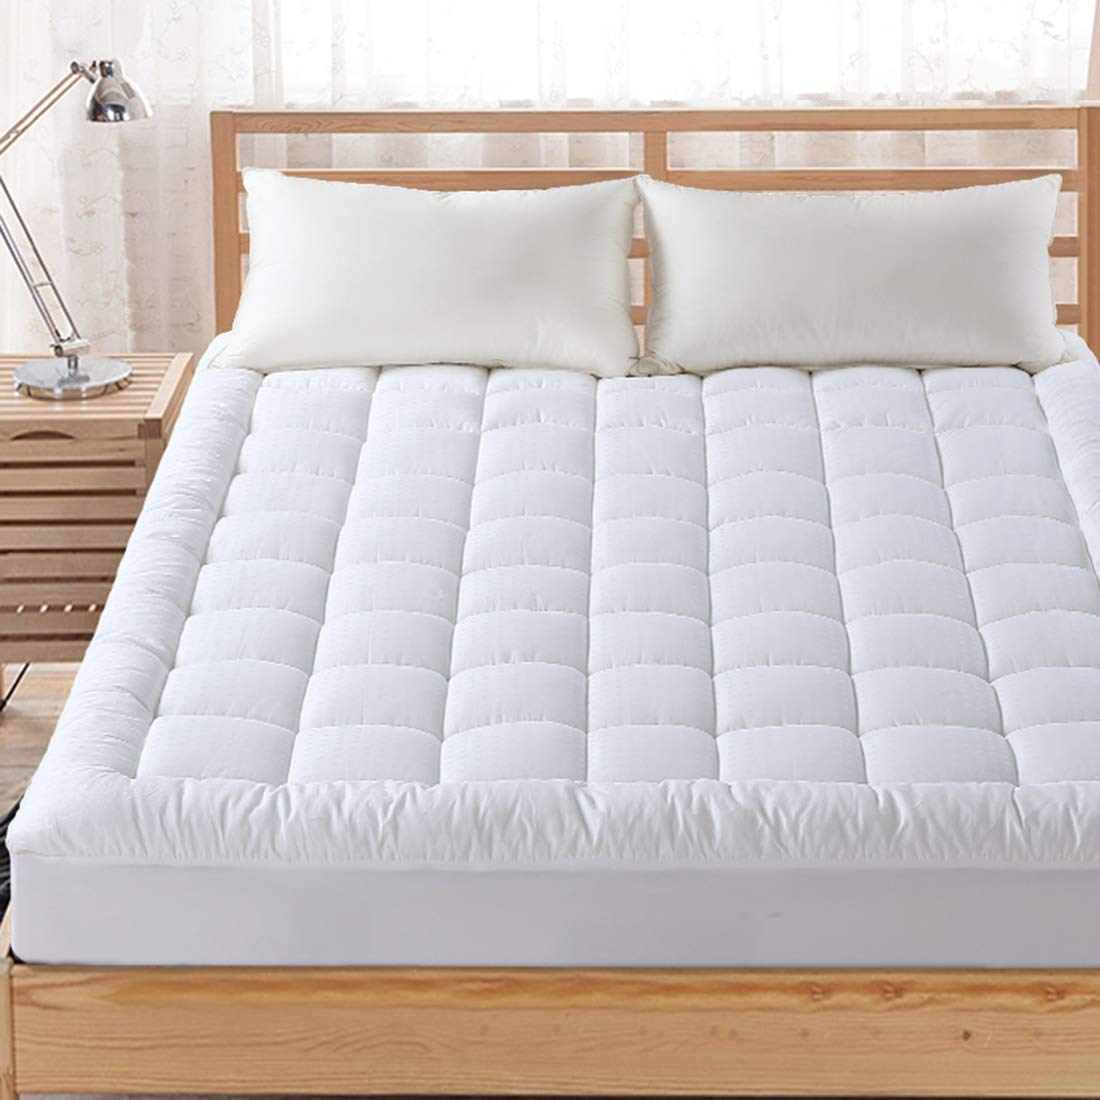 FAIRYLAND Queen Mattress Topper Pillow Top Cooling Quilted Mattress Pad Cover Cotton with Snow Down Alternative Fill(8-21 Inch Deep Pocket)